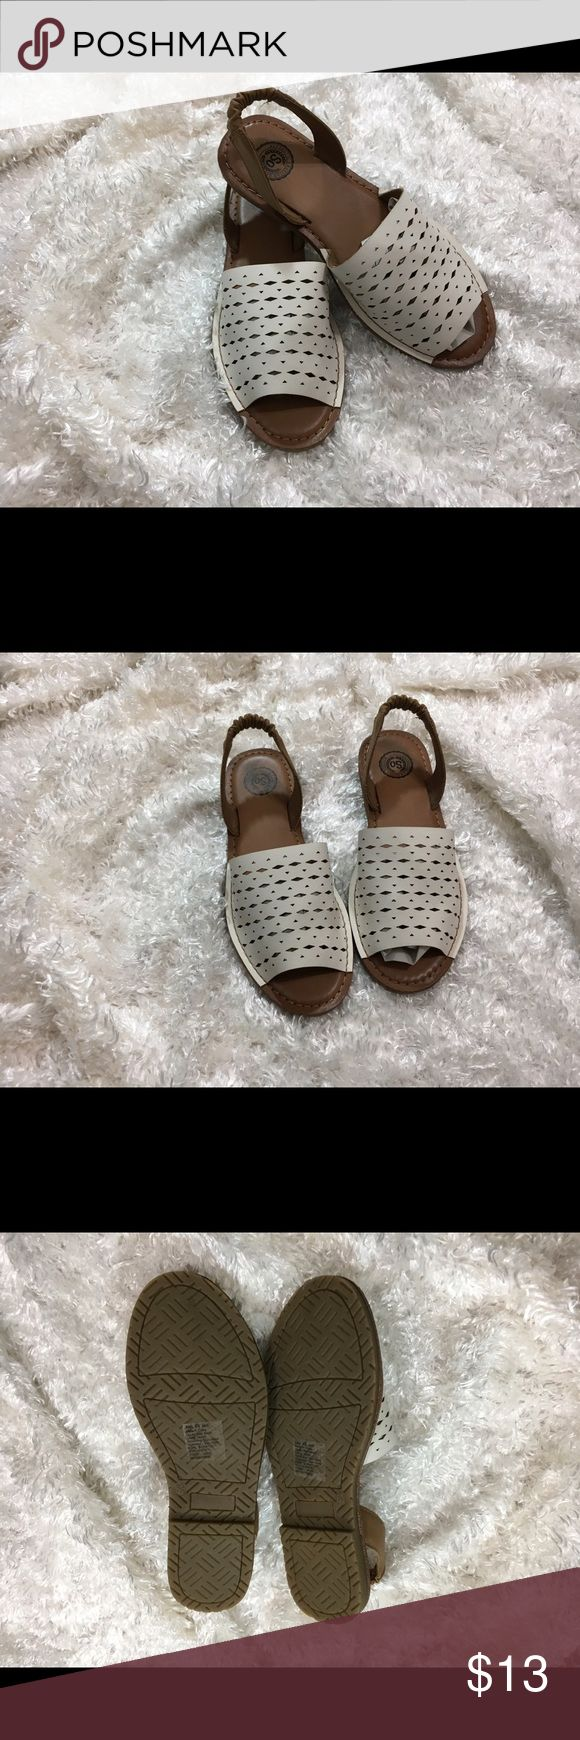 So Slingback Sandals Size 6.5 Brand new white sandals. Great for summer for a casual look. so  Shoes Sandals